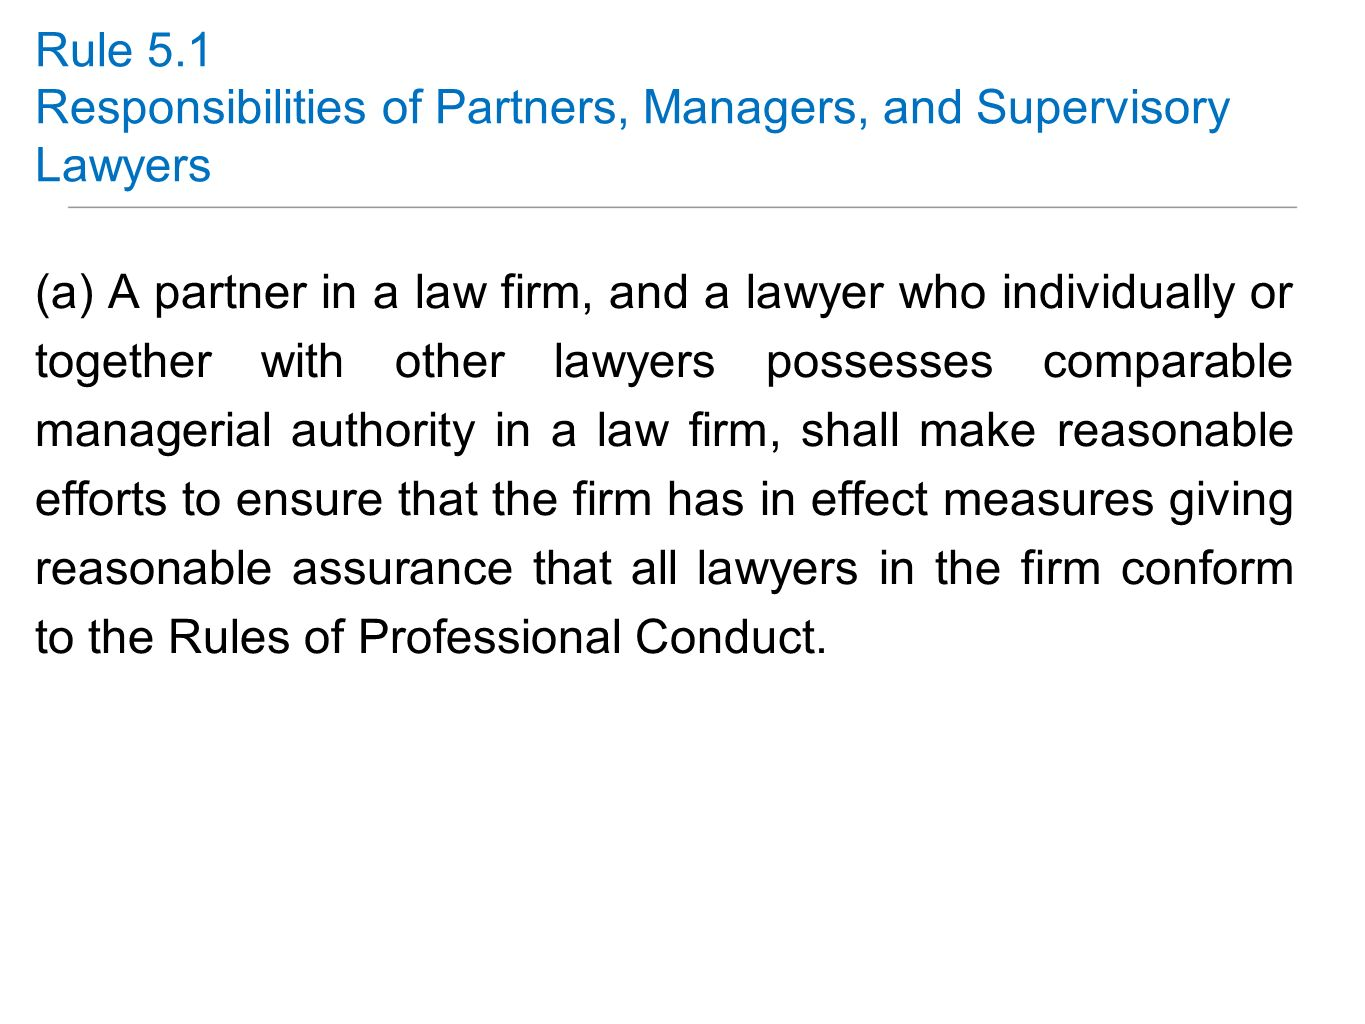 Rule 5.1 Responsibilities of Partners, Managers, and Supervisory Lawyers